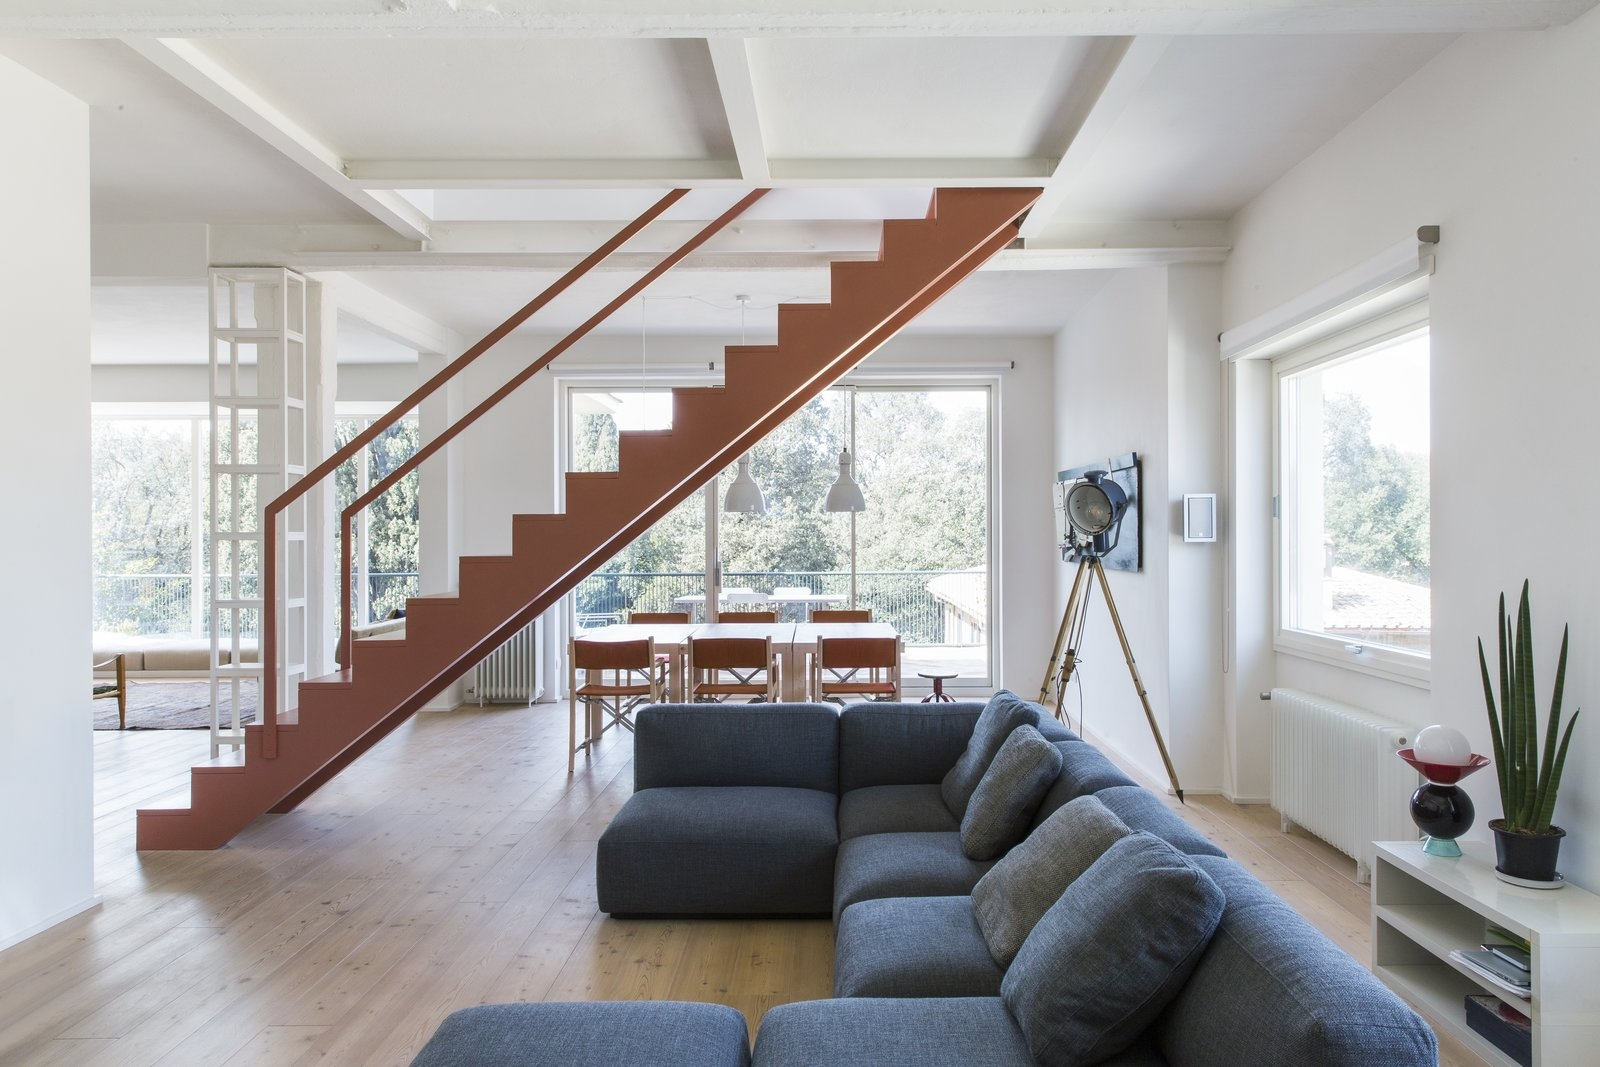 A Pink Staircase Dominates The Revival Of This Roman Apartment Dwell | Stairs In Middle Of Room Interior Design | 3 Story Staircase | House | Middle Hallway | Private Home | Mixed Interior